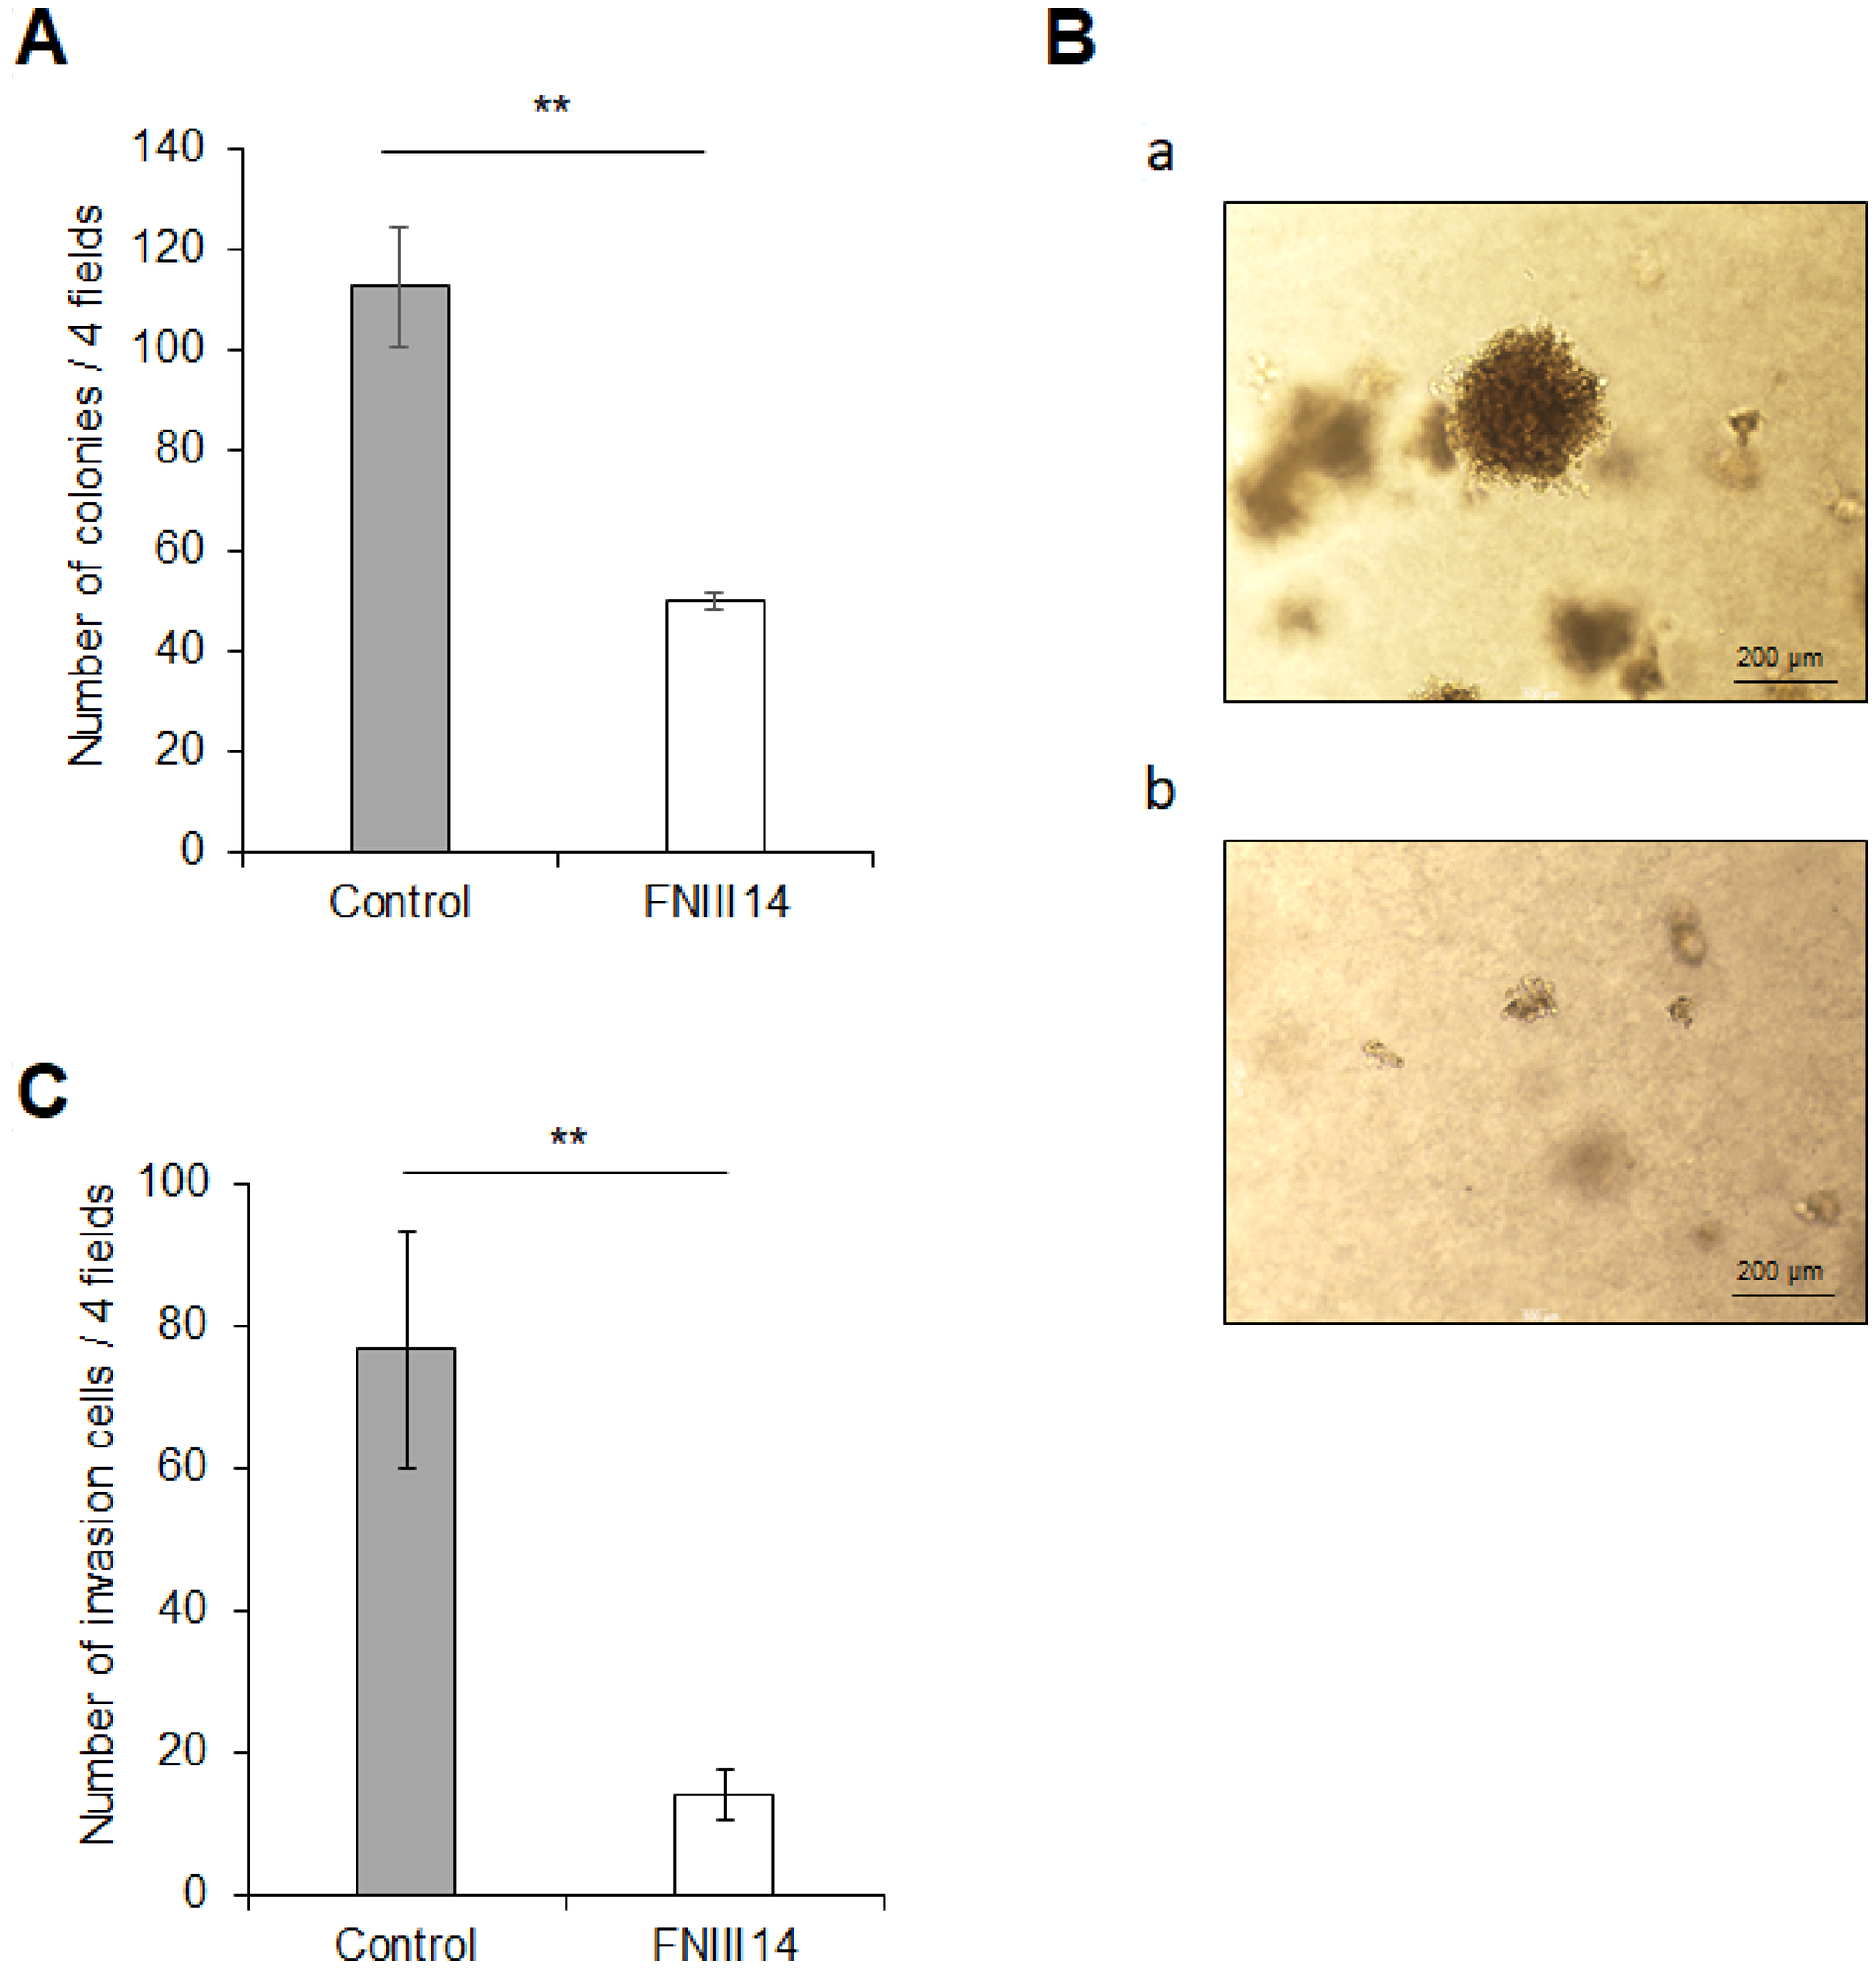 FNIII14 has the ability to attenuate cancer-related malignant properties.